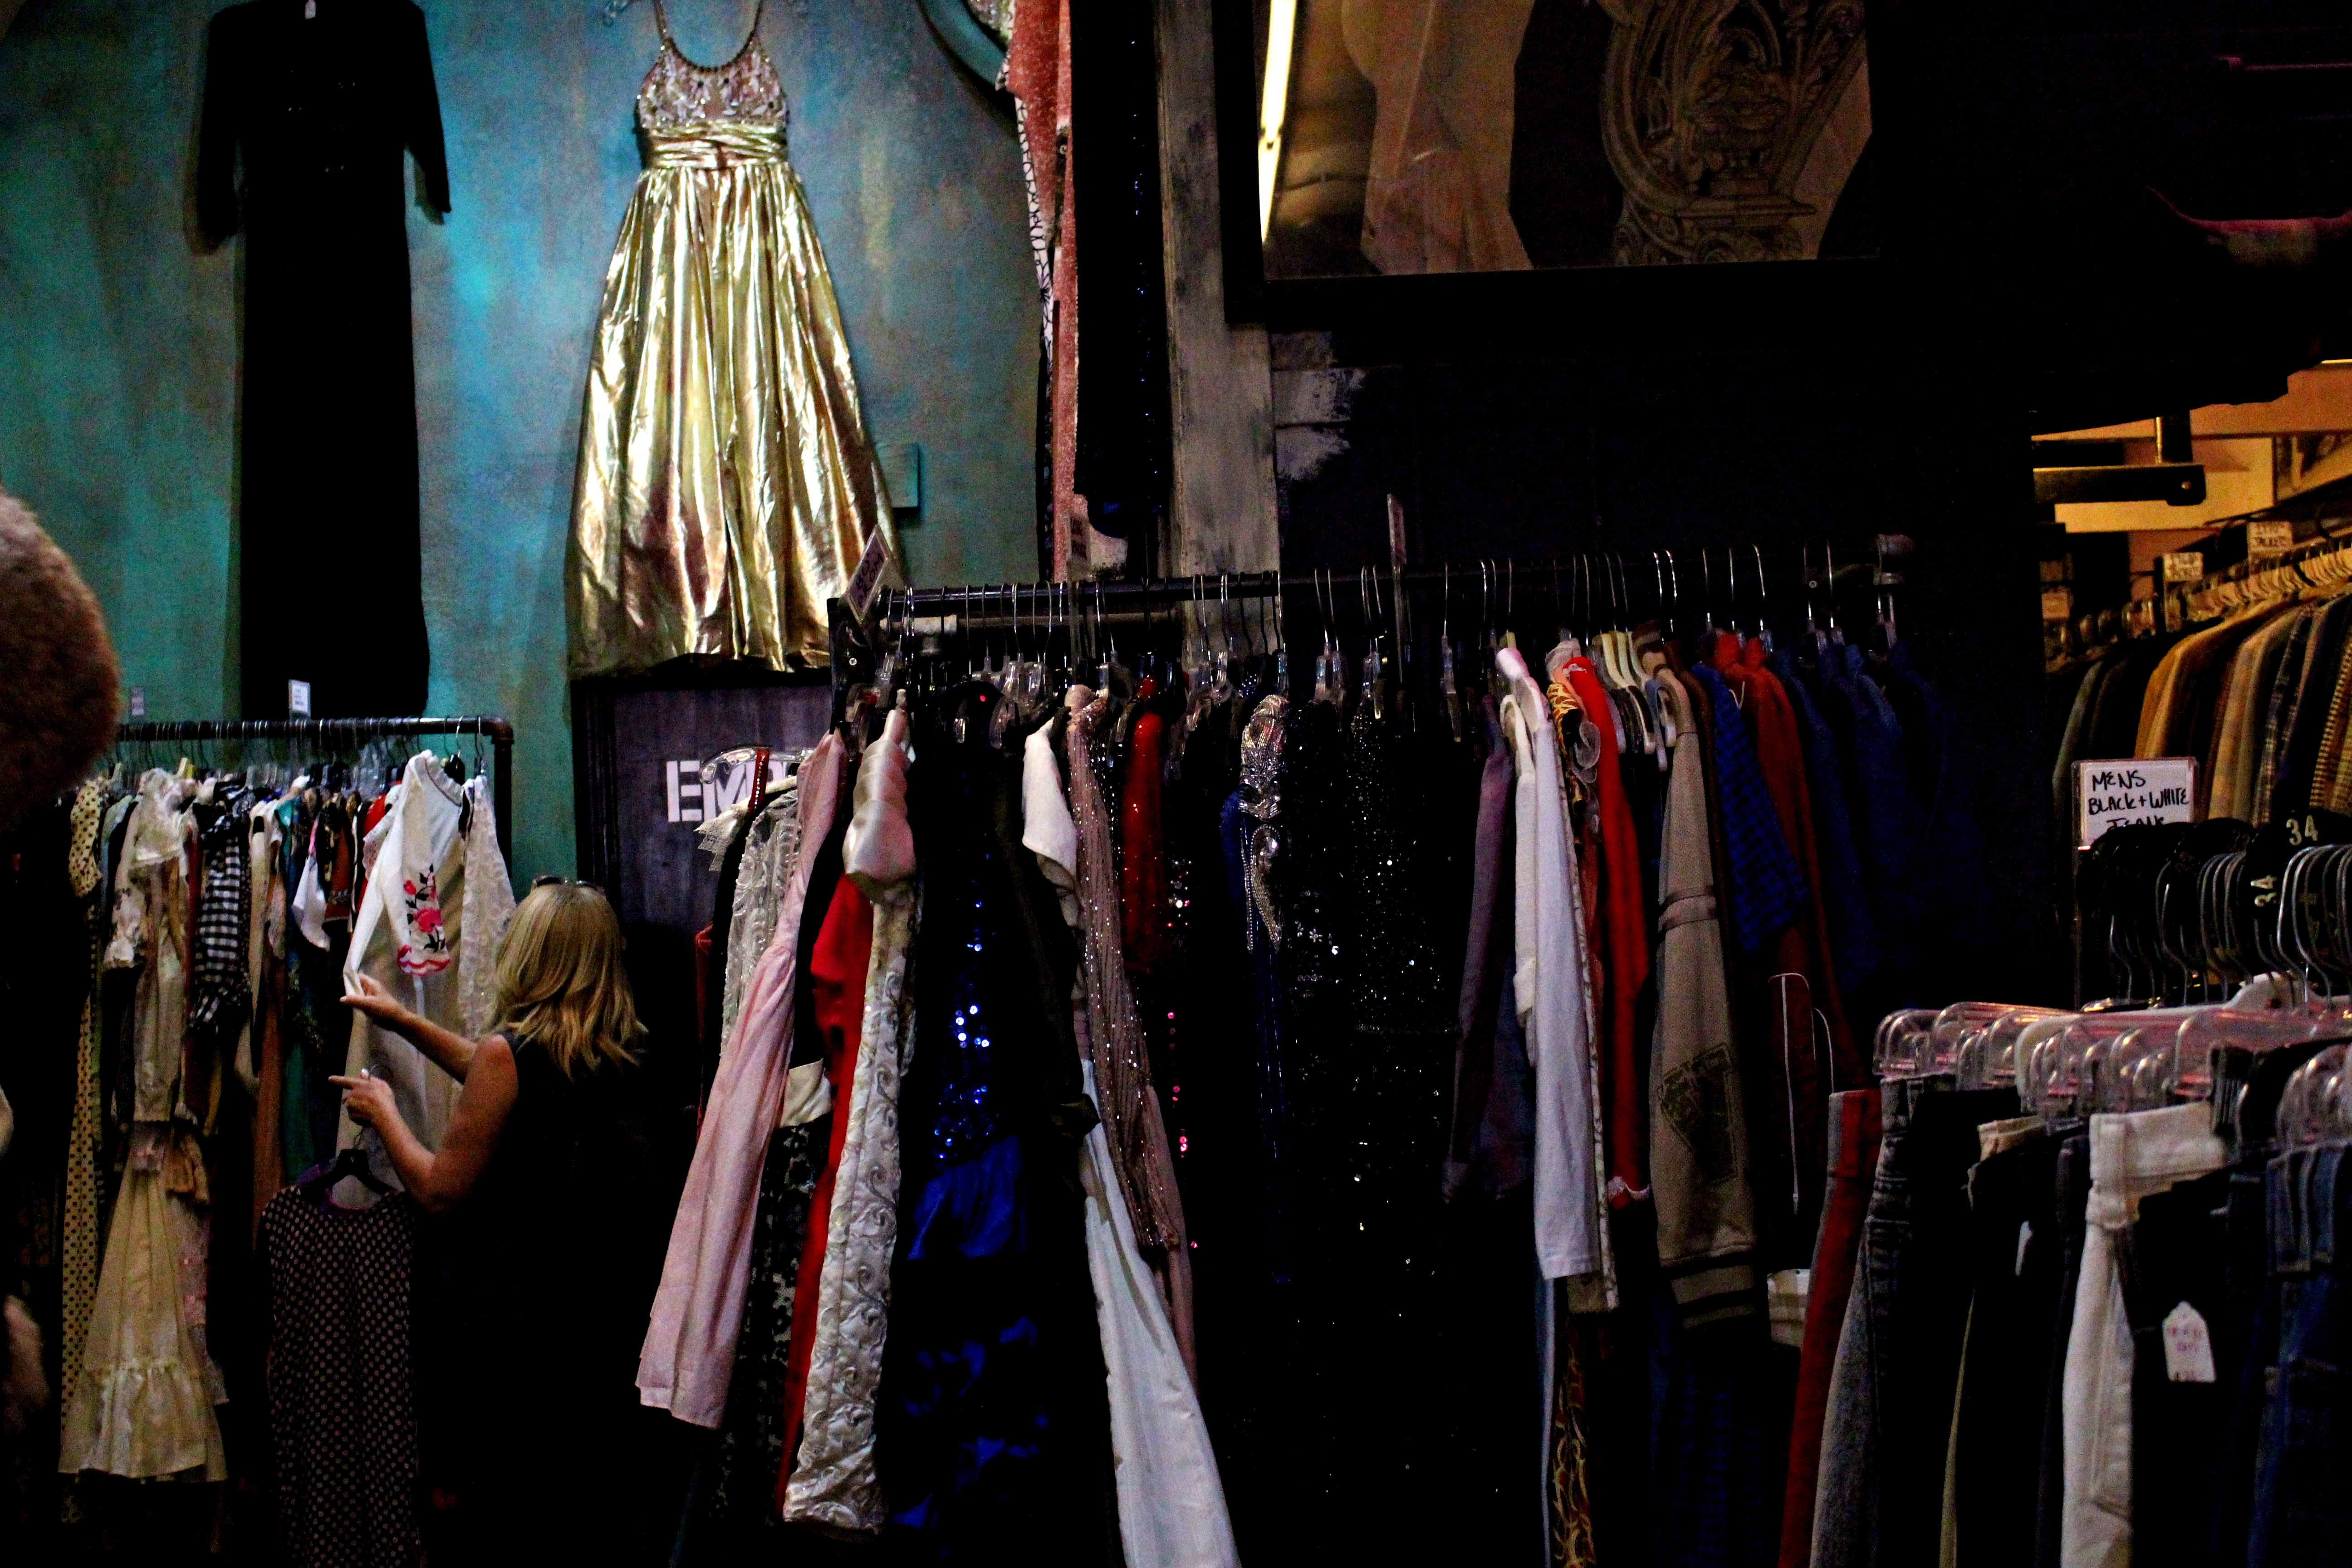 A customer looks around in the costume section. Credit: Fiona Belk / M-A Chronicle.